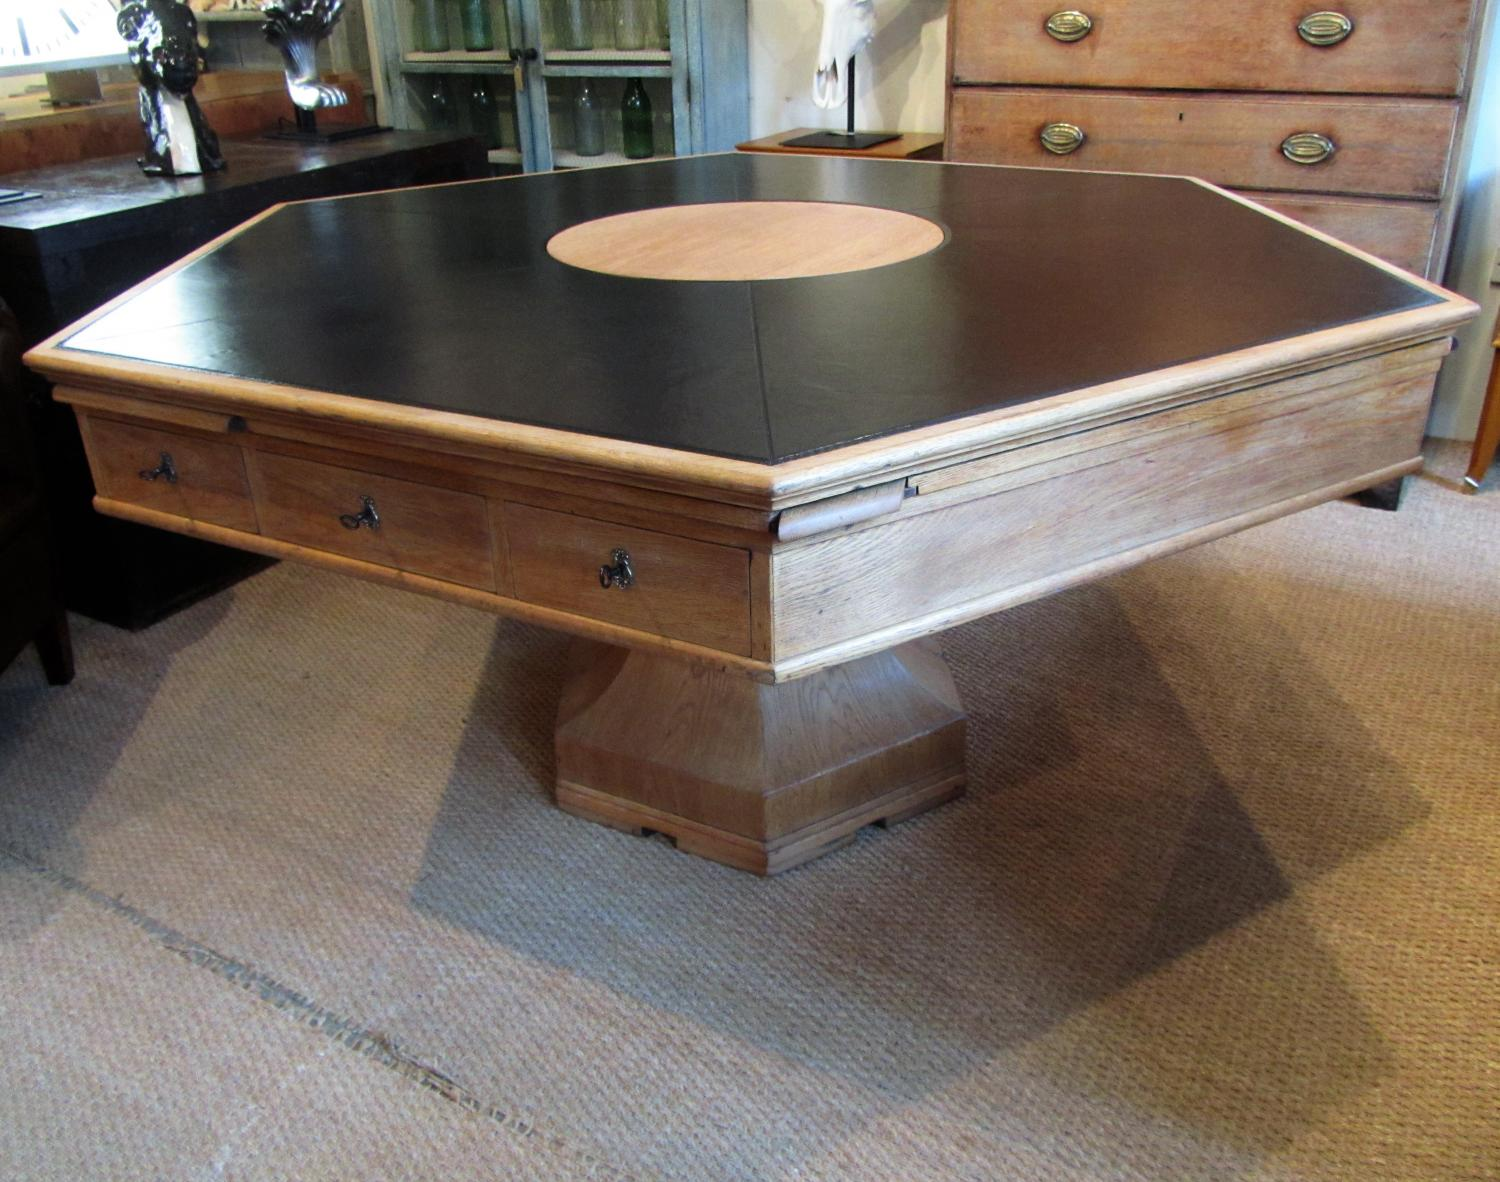 A Huge Rent / drum table